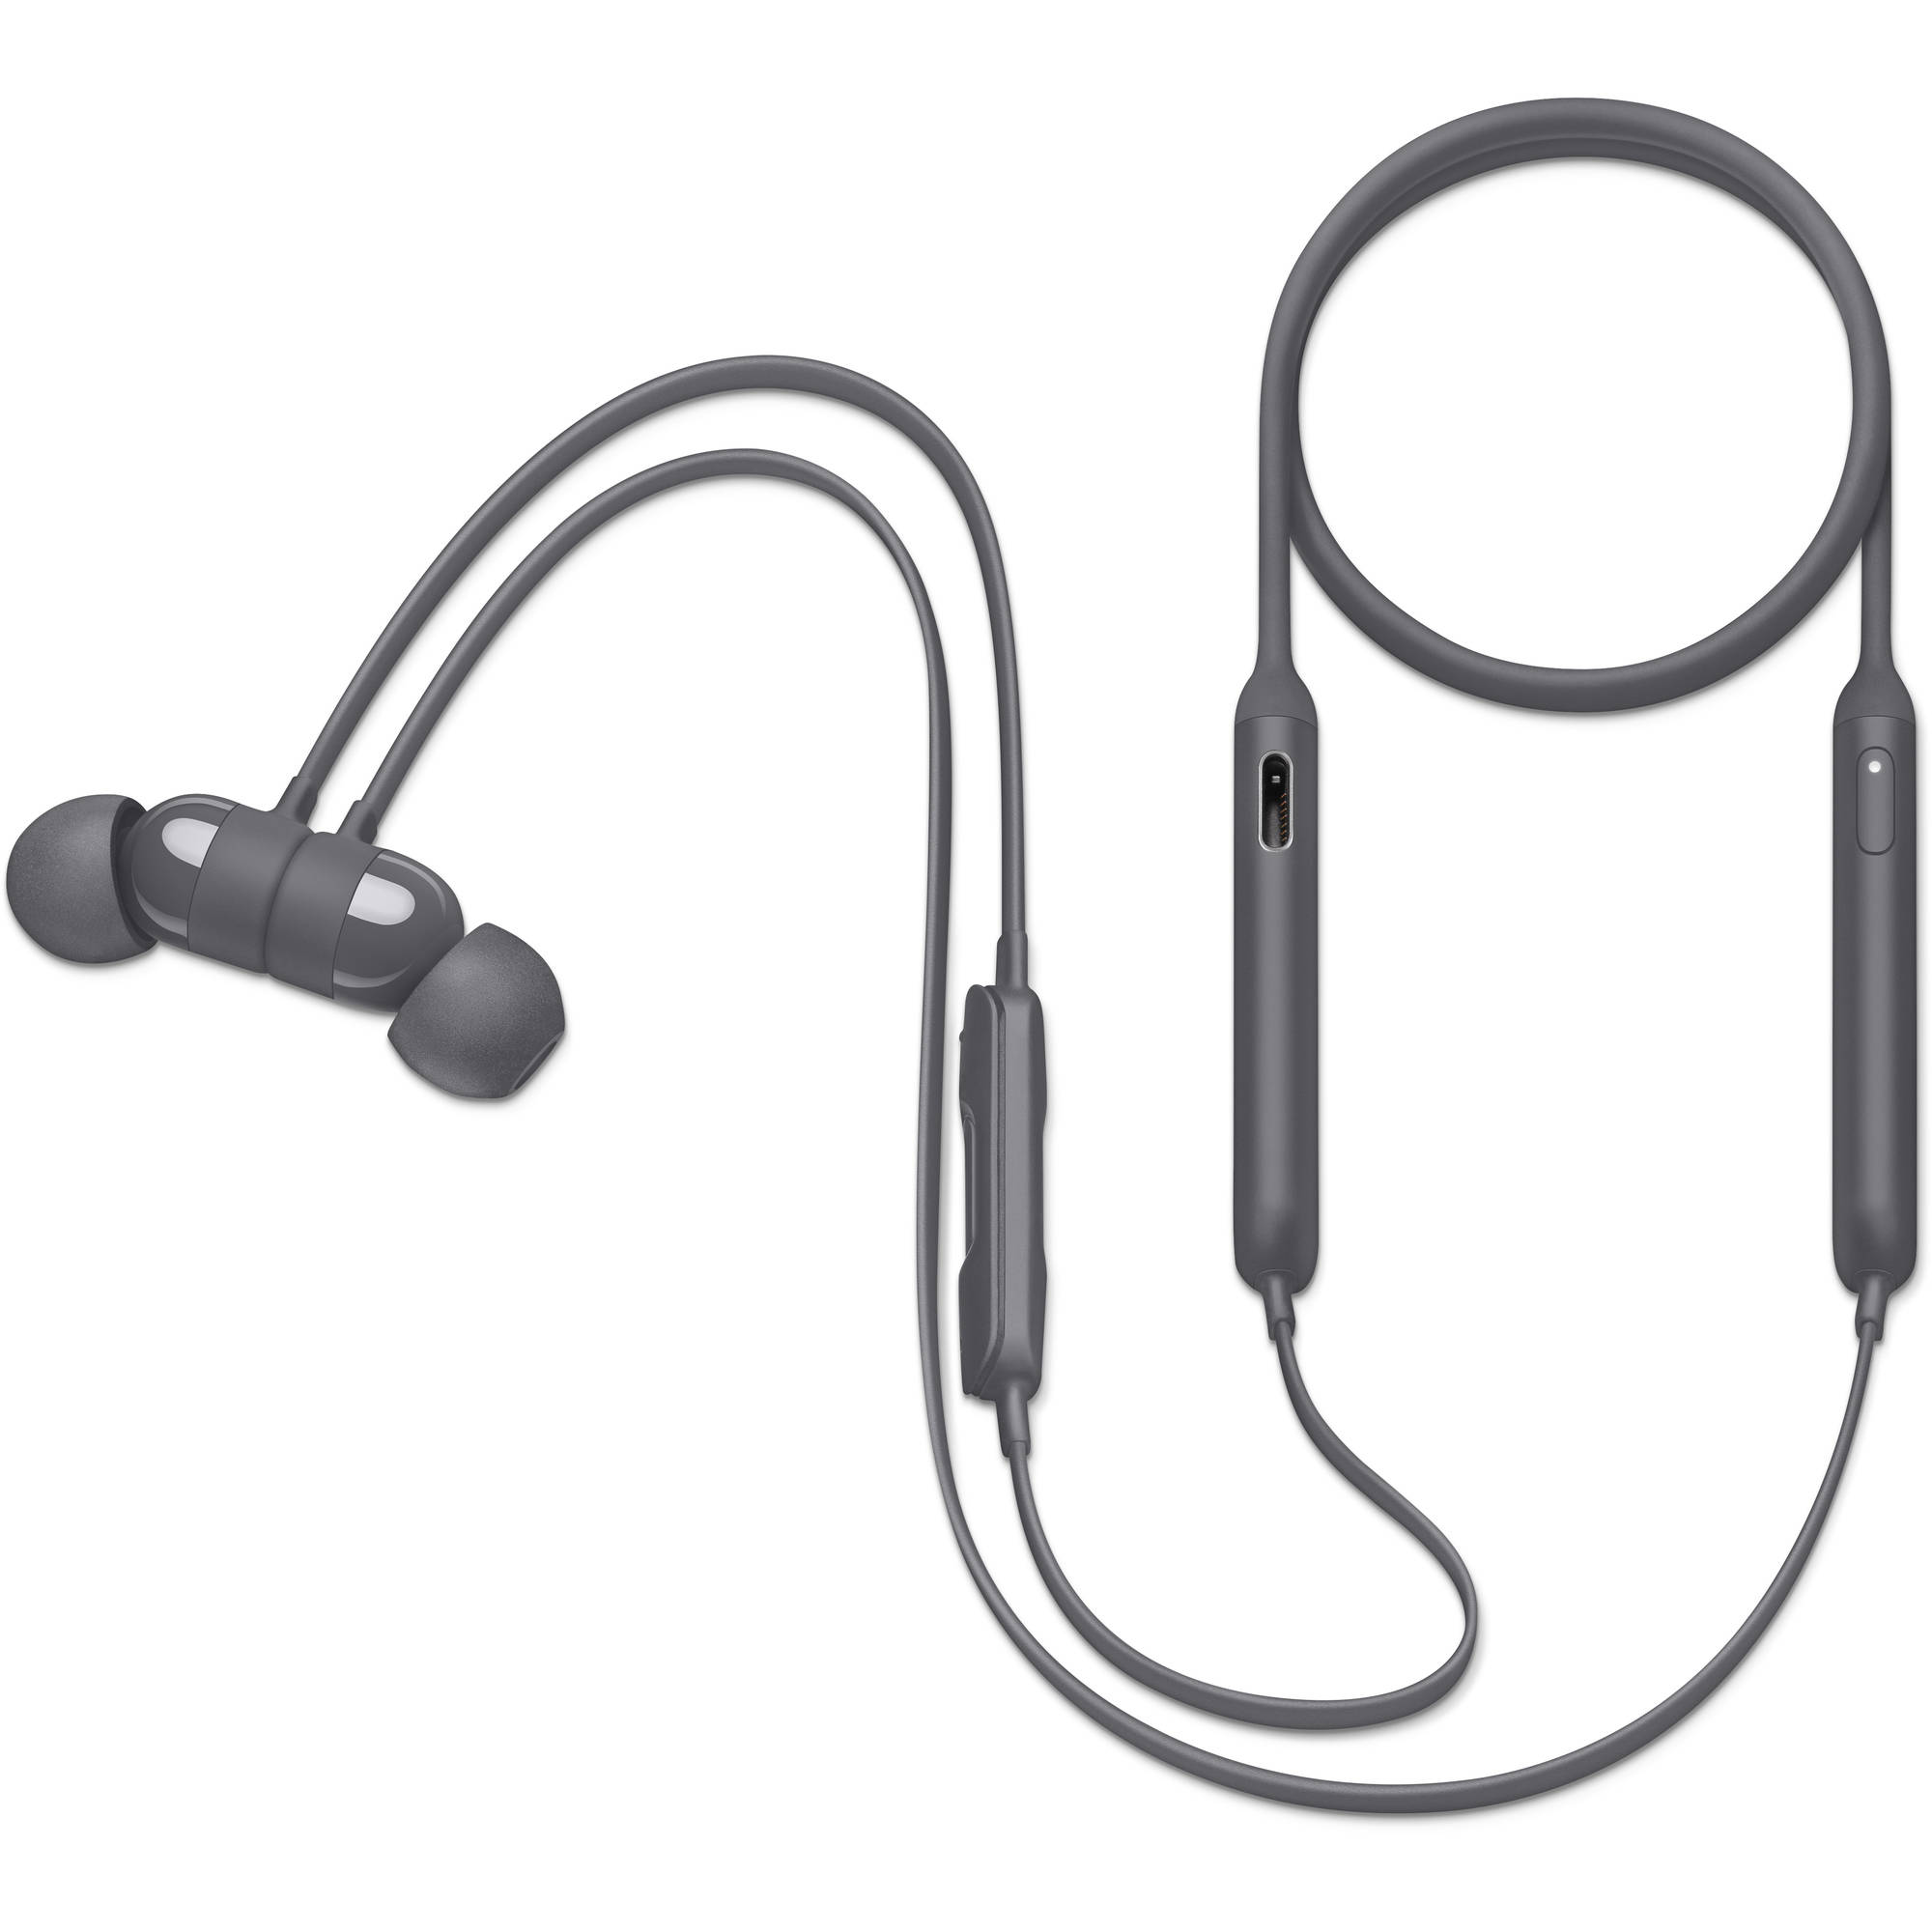 a04d2d76138 Beats X Wireless Earphones - Walmart.com